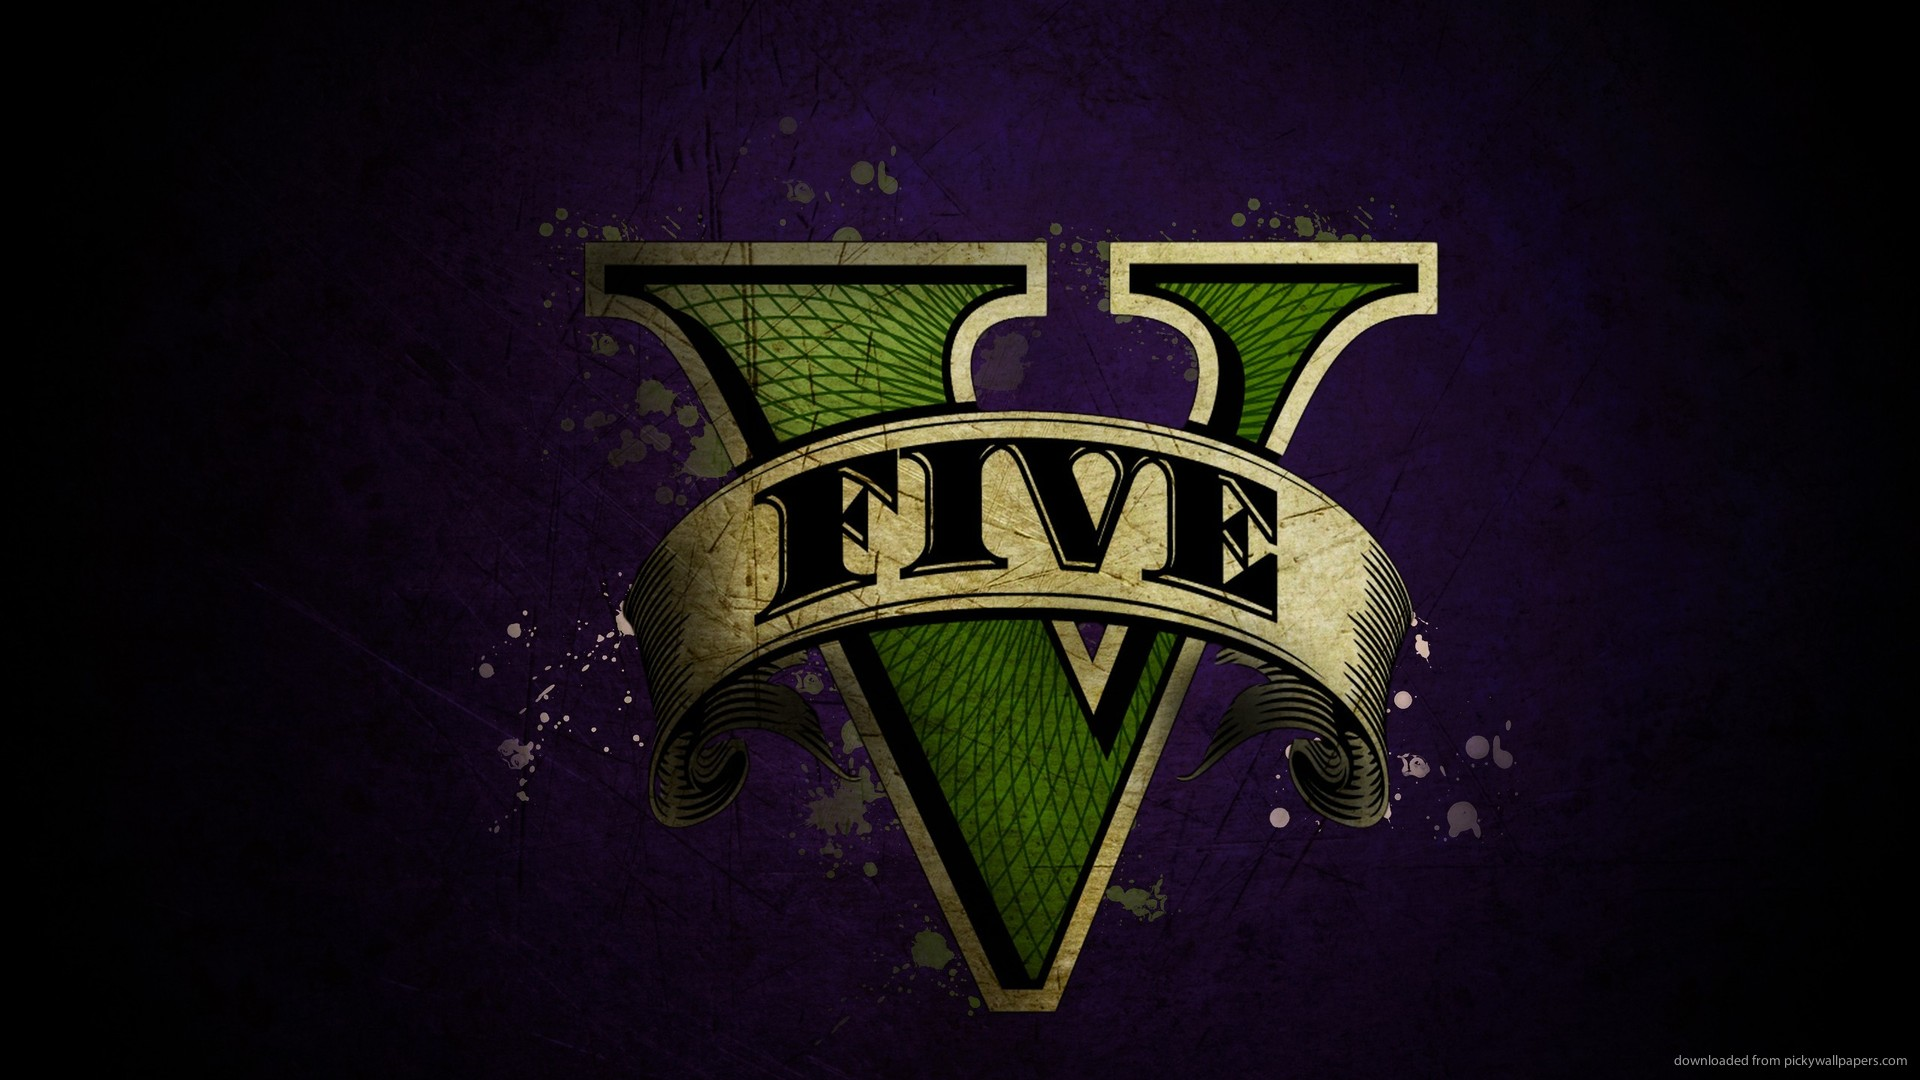 gta 5 logo wallpaper1920x1080 gta 5 logo wallpaper 7ee2my6pjpg 1920x1080